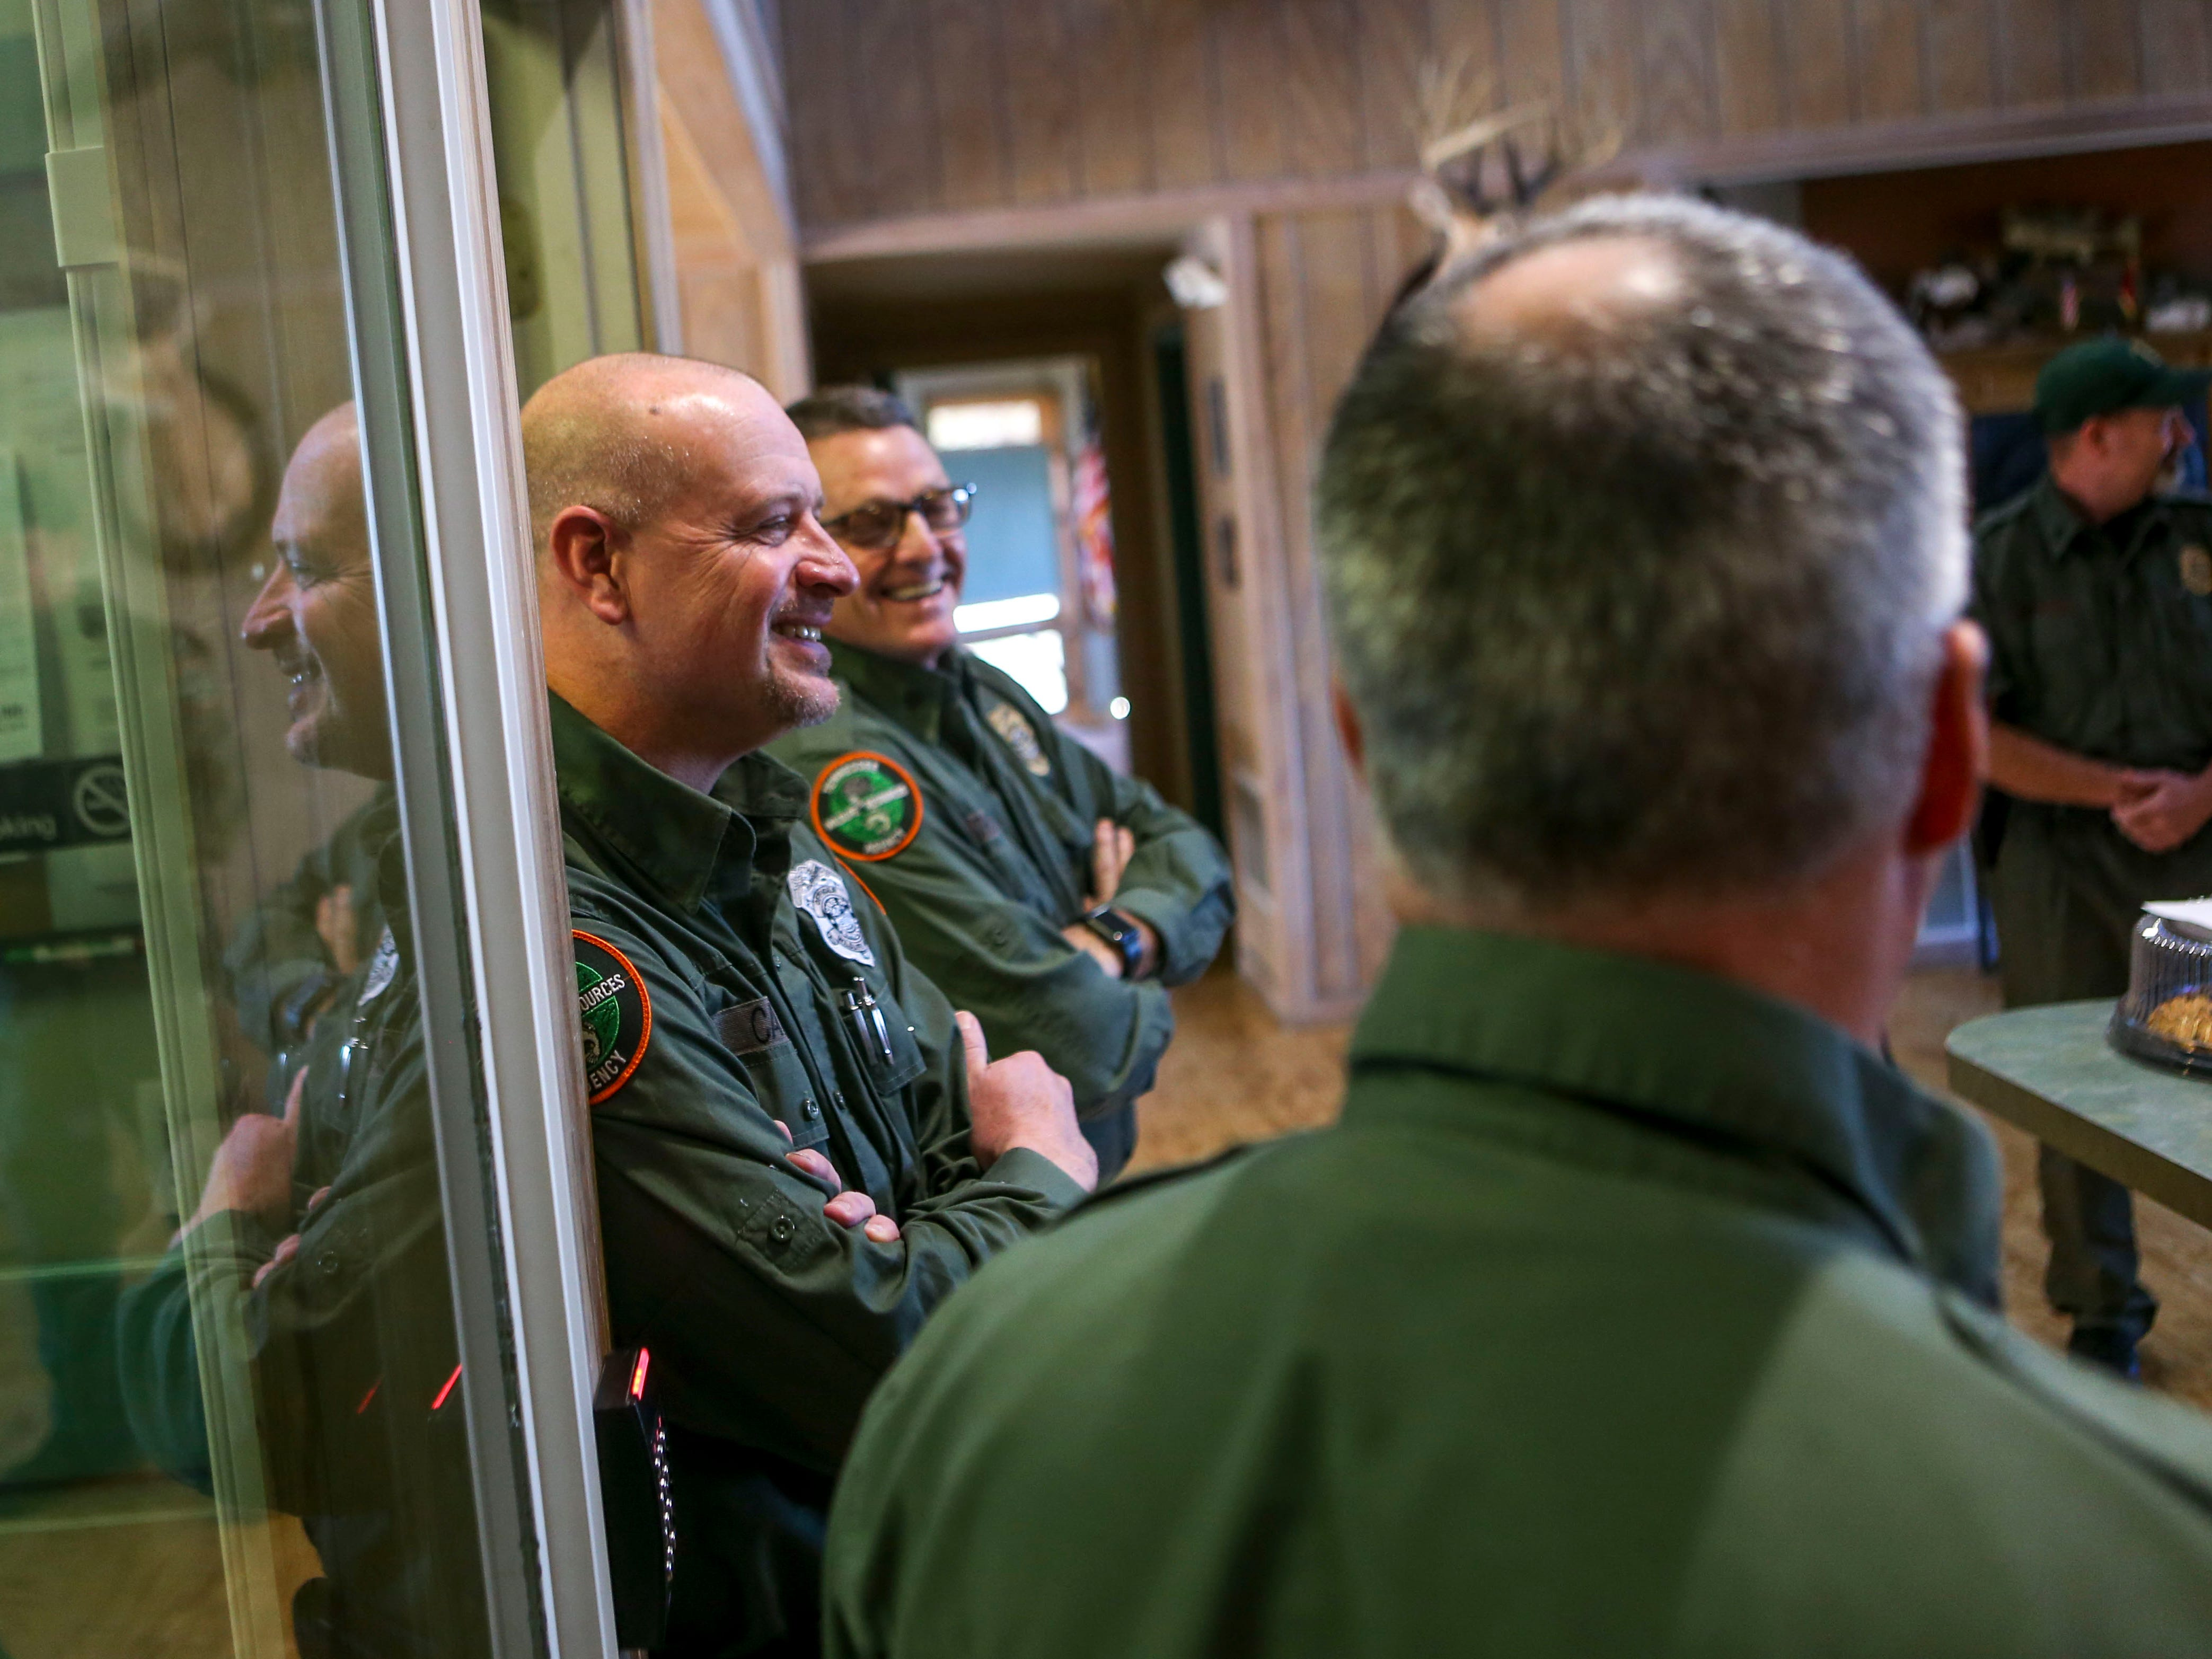 Wildlife Officer Chuck Casey smiles while joking around with others during a visit from supporters on National Law Enforcement Day at the Tennessee Wildlife Resource Agency Region One offices in Jackson, Tenn., on Wednesday, Jan. 9, 2019.